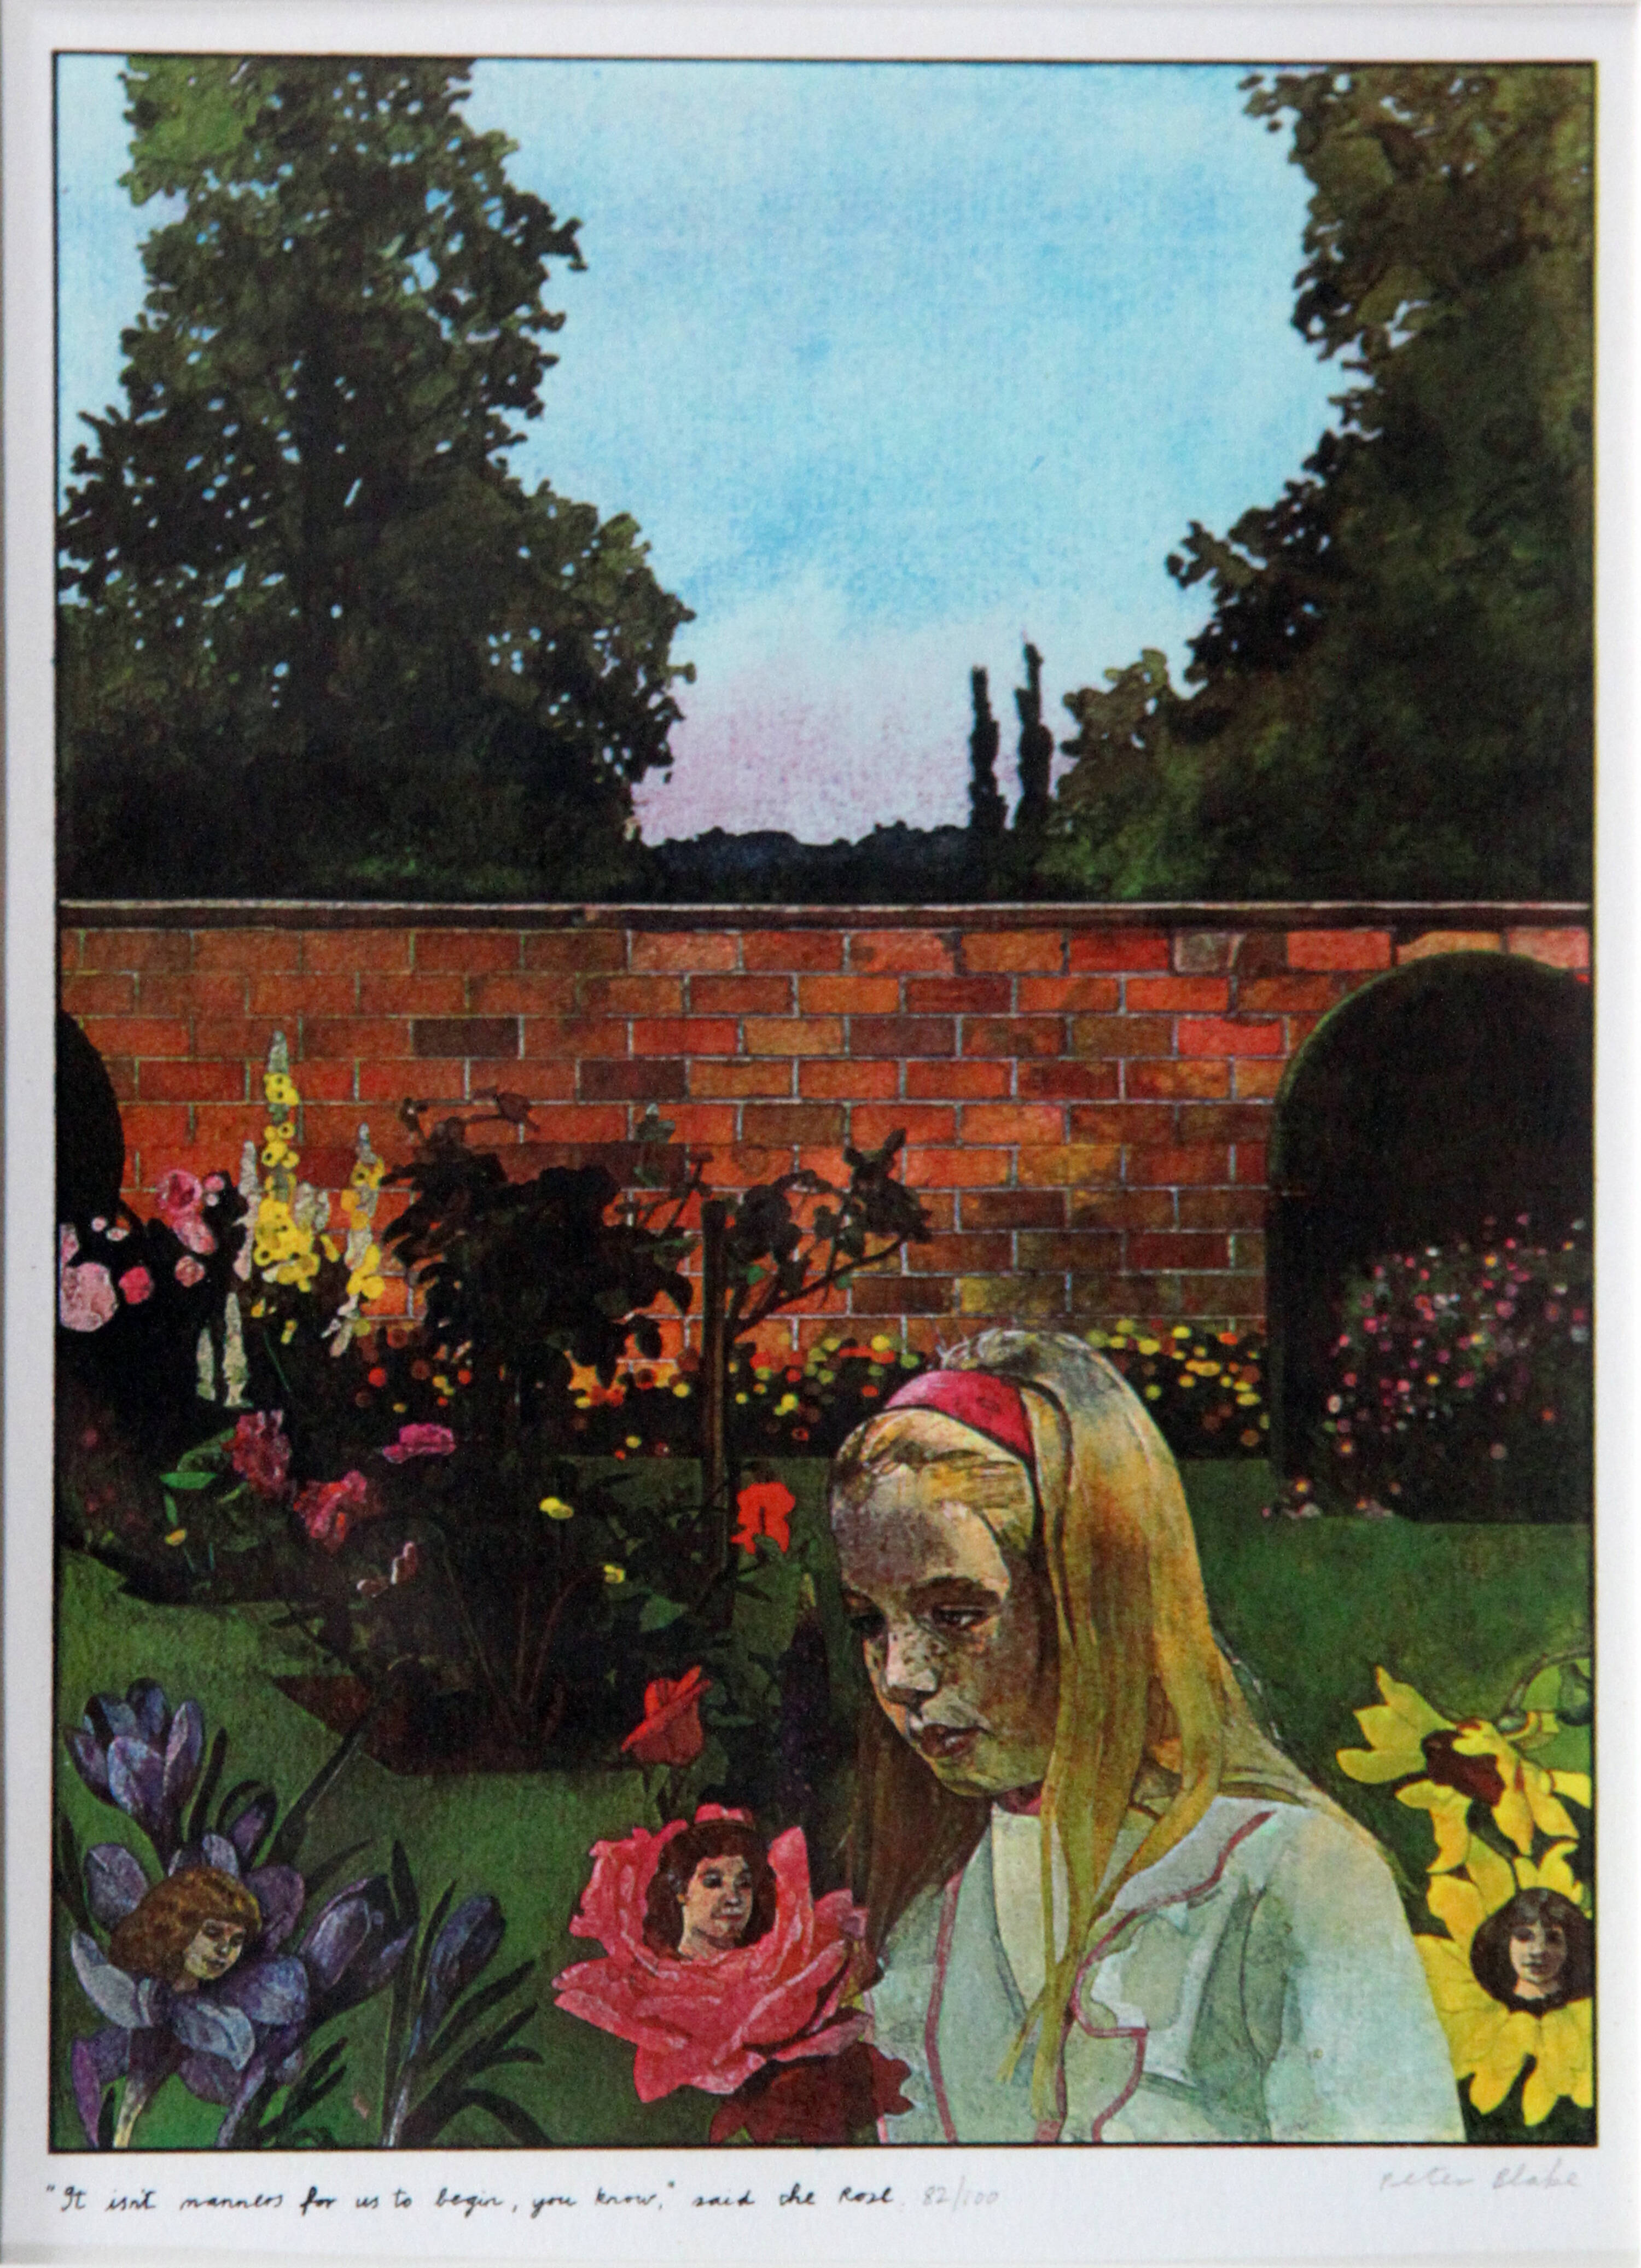 PETER BLAKE - 'Alice in Wonderland - It isn't manners for us to begin, you know - said the rose'